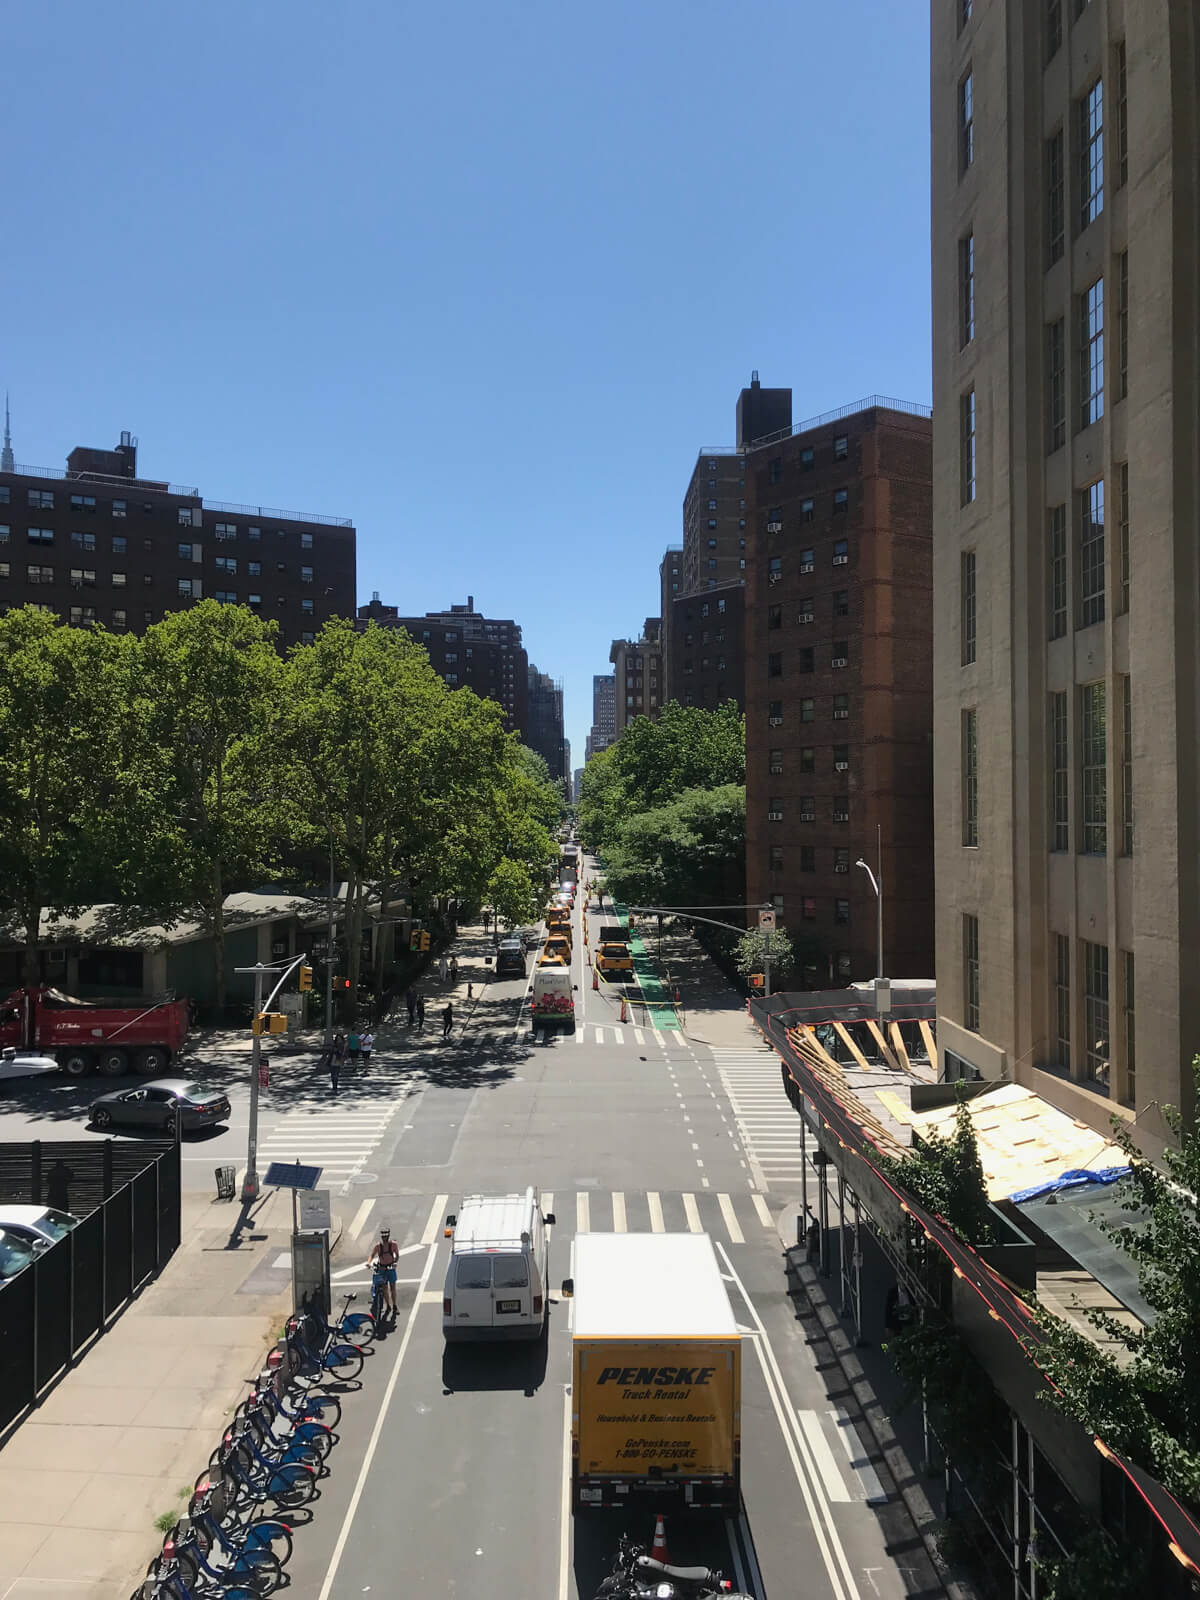 A daytime, high-angle view of a street in New York on a sunny day. Many bicycles are parked on the side of the street and there are a couple of vans and small trucks driving on the street